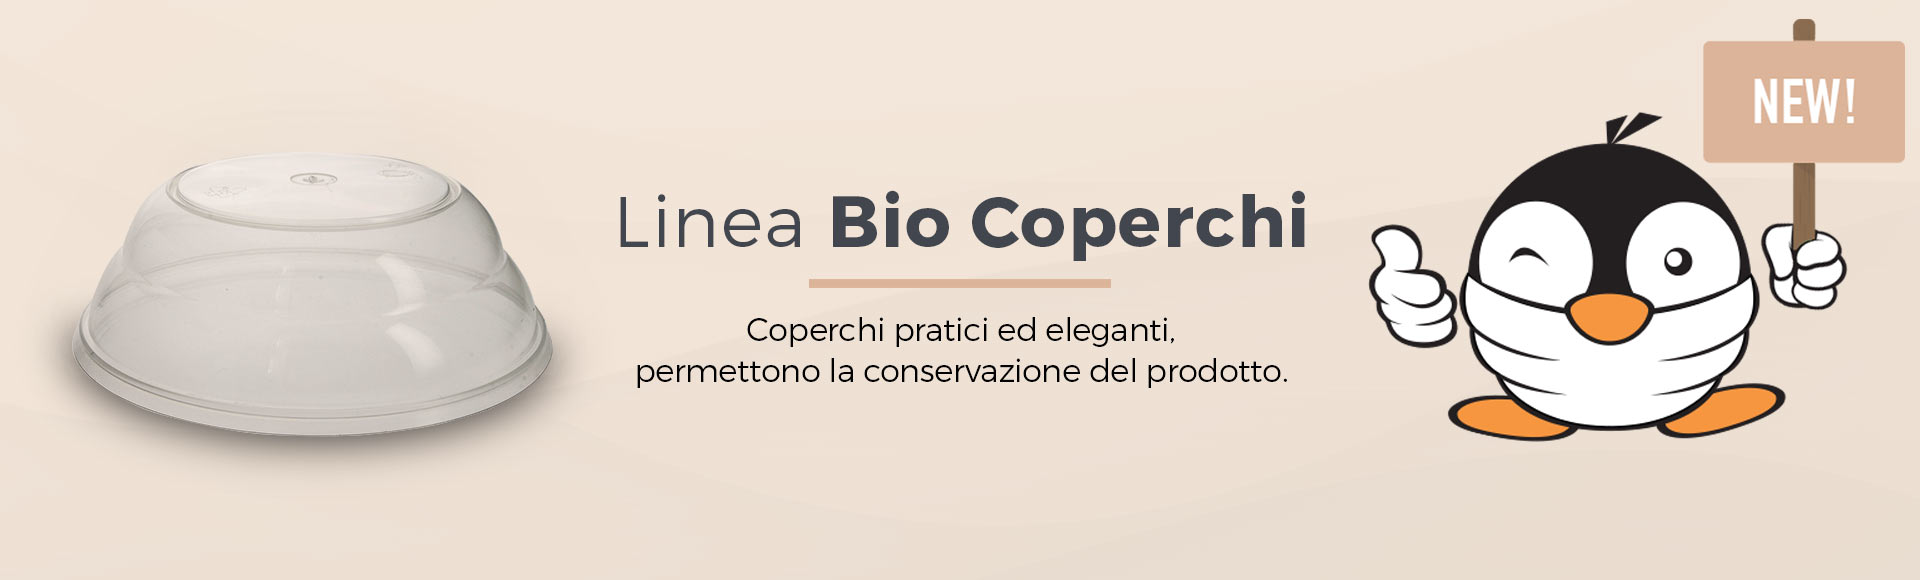 it-header-linea-bio-coperchi